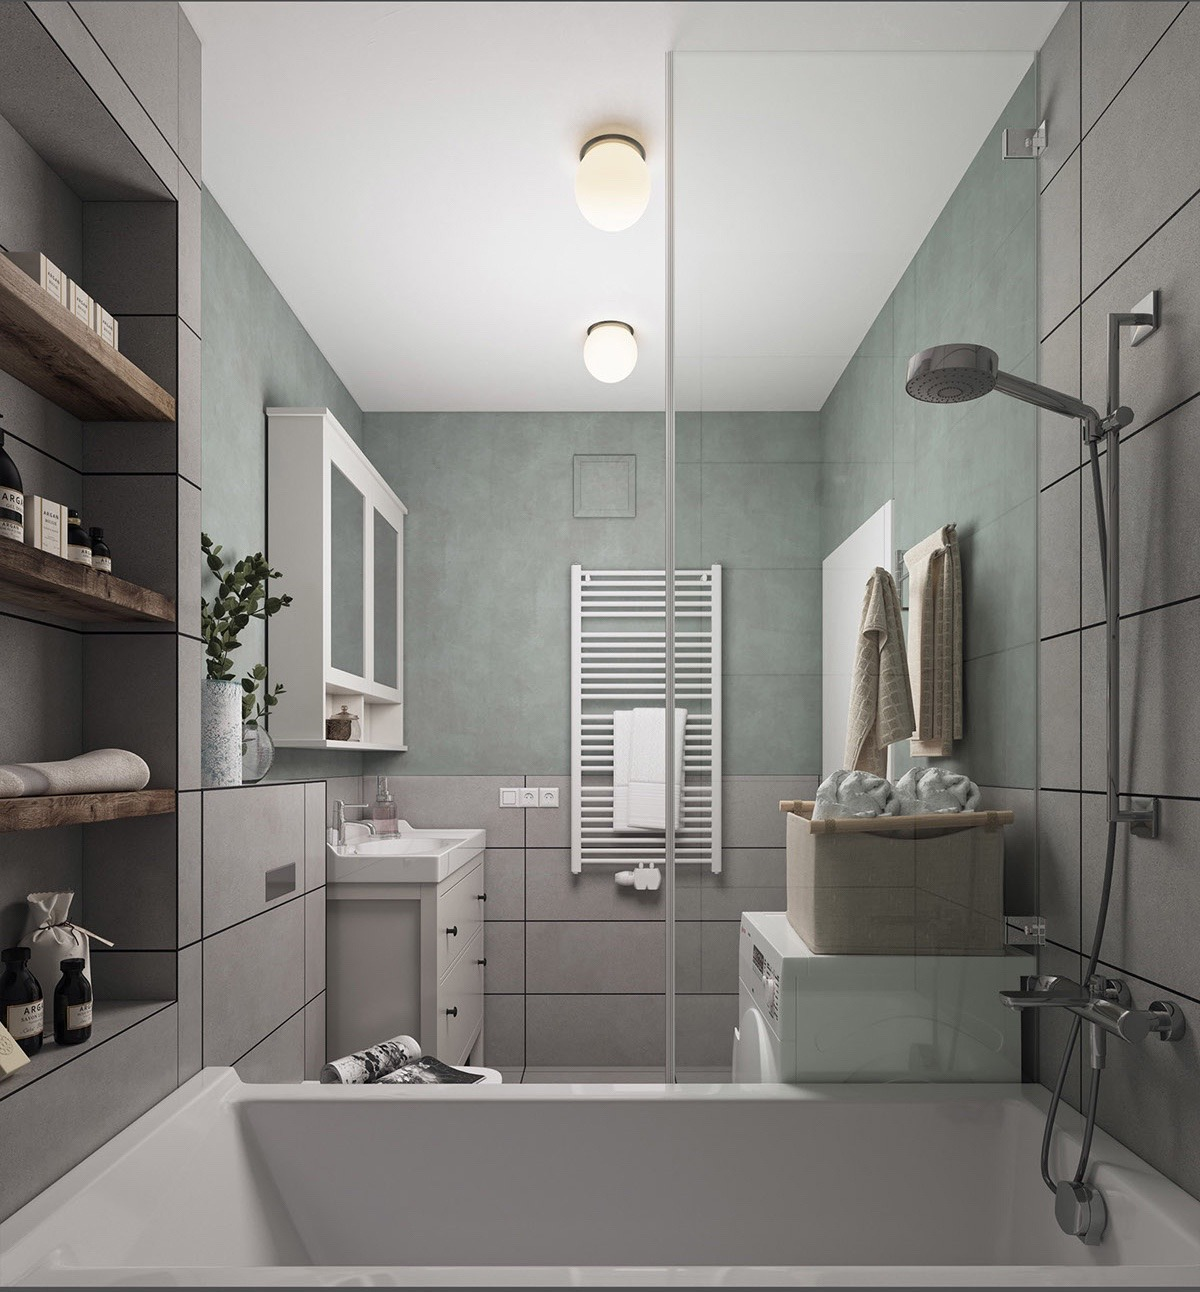 The bathroom takes on a softer side to framing, with a block cabinet and bath in white ceramic. A light teal tint and towelling offers a feminine touch to a space for pampering. Wooden shelving and small potted plants fill the room with nature.